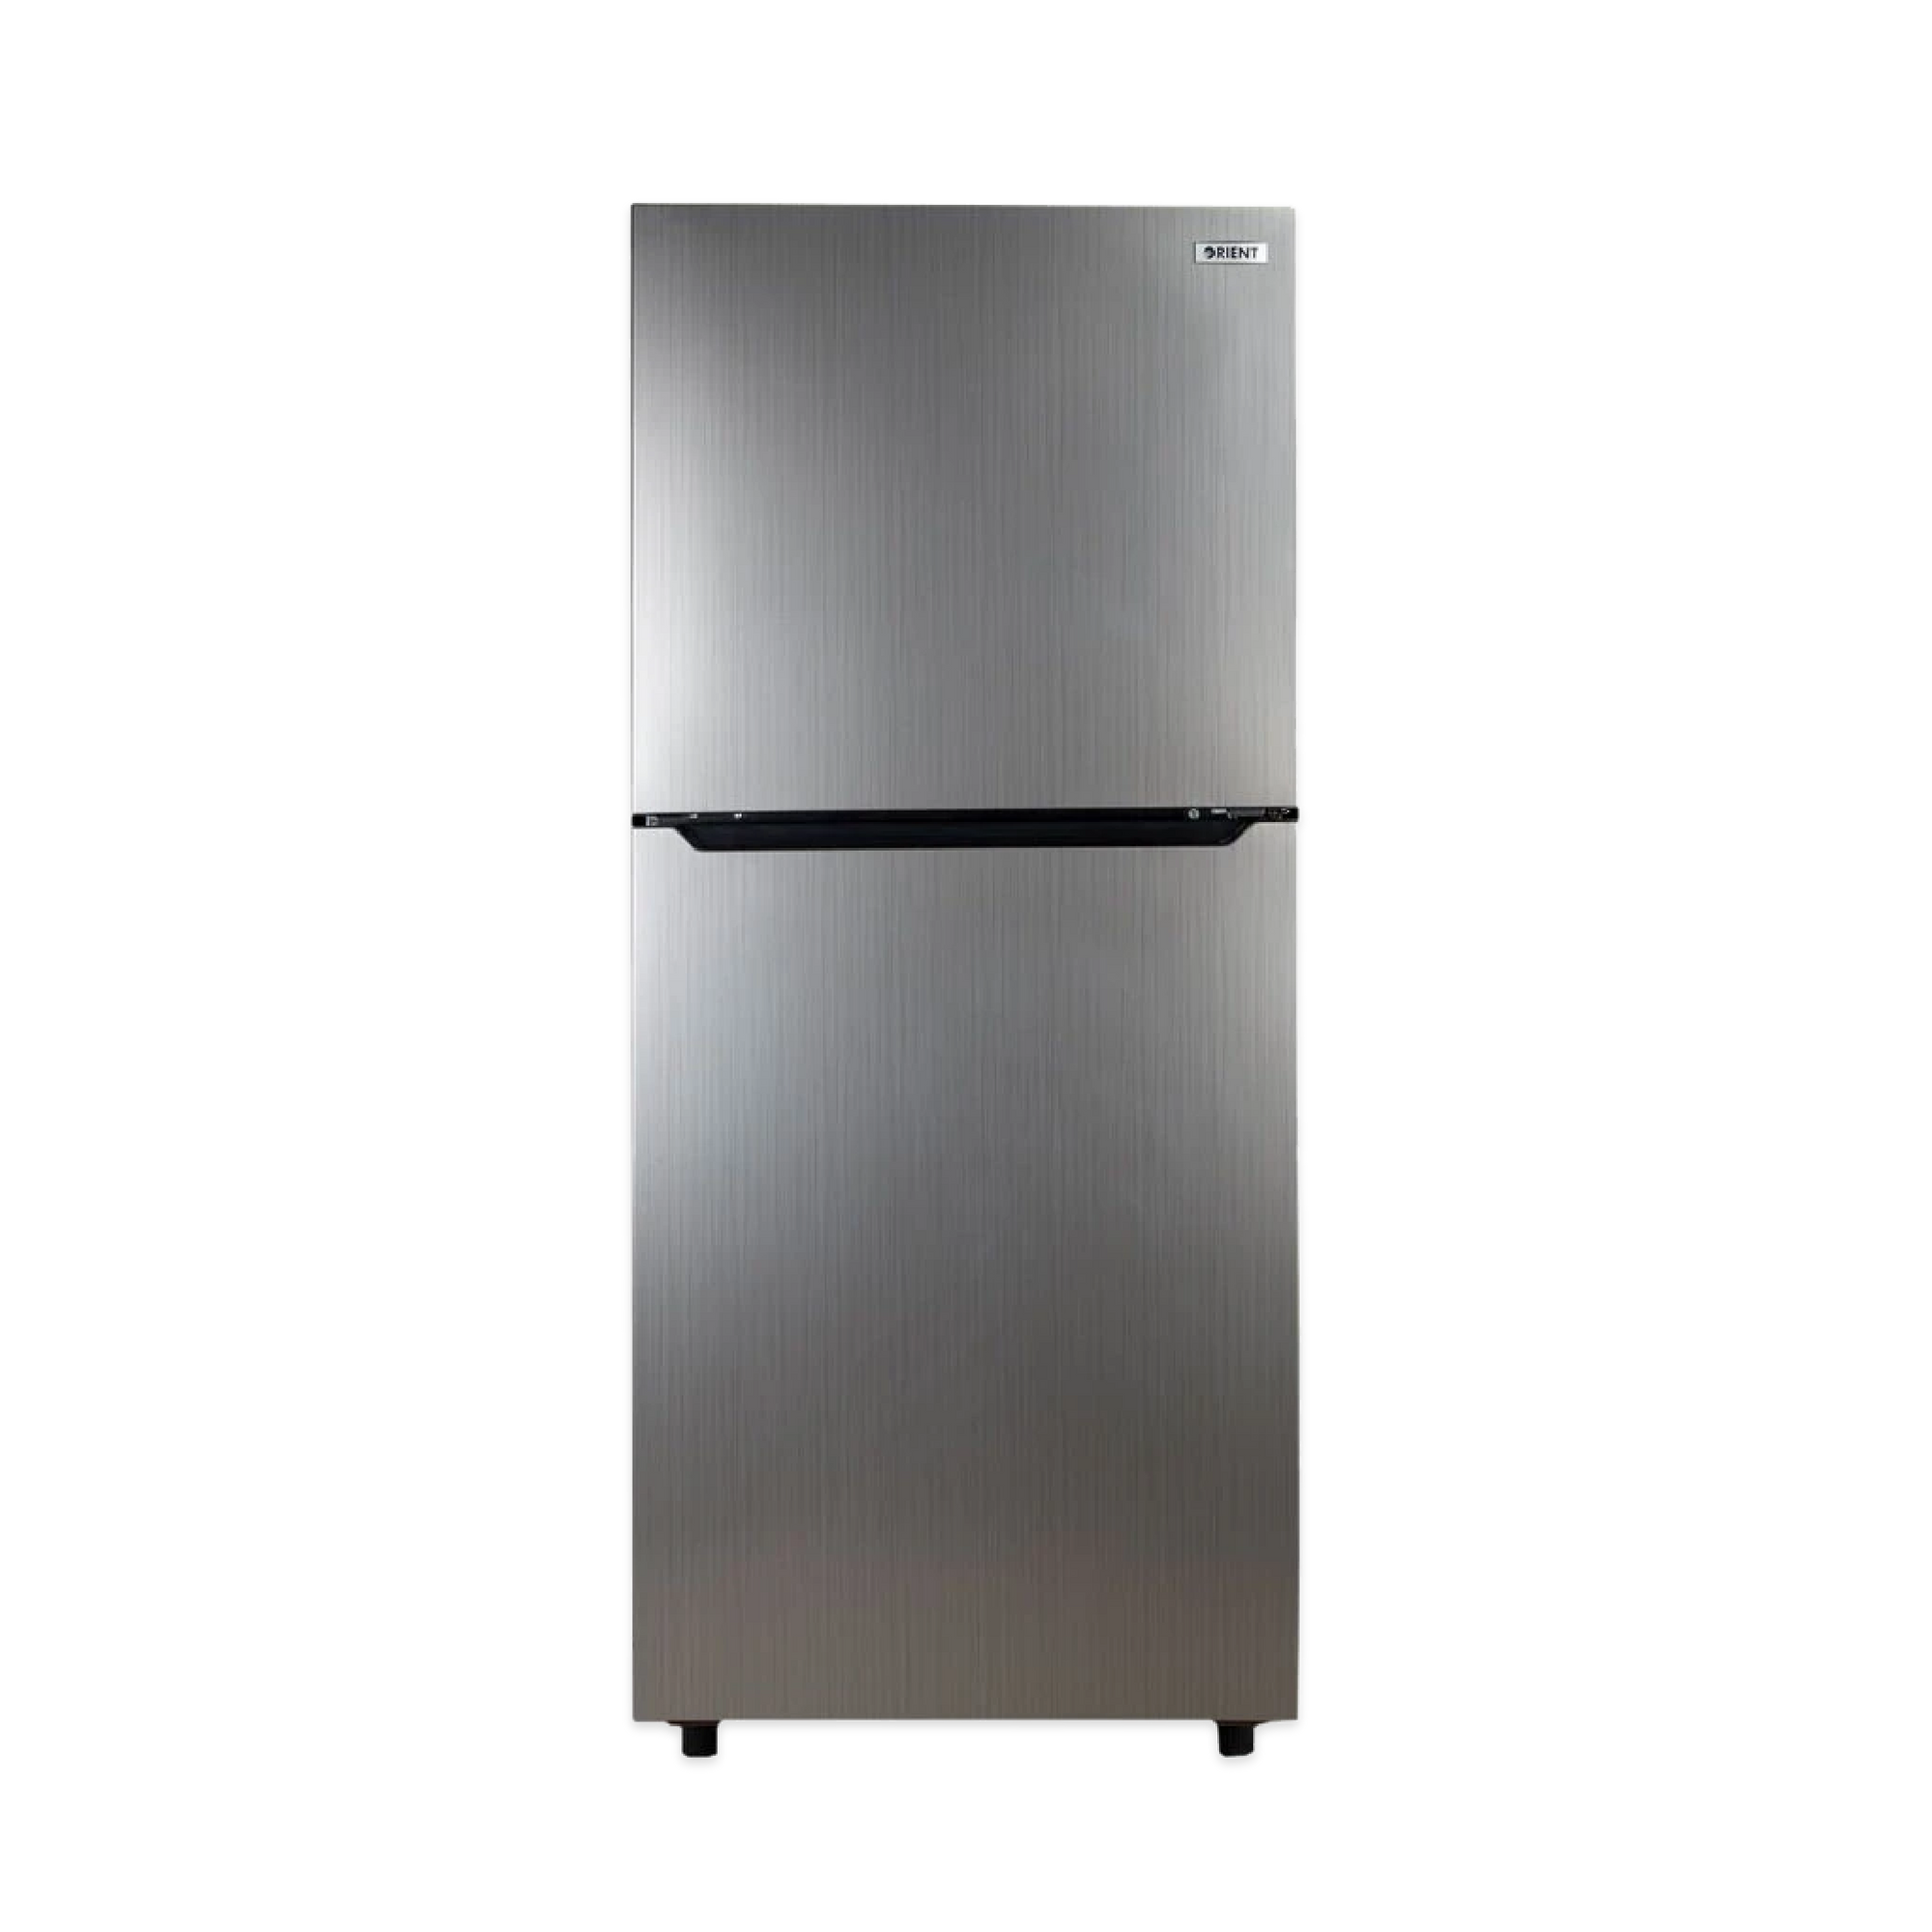 Grand 355 Liters Refrigerators